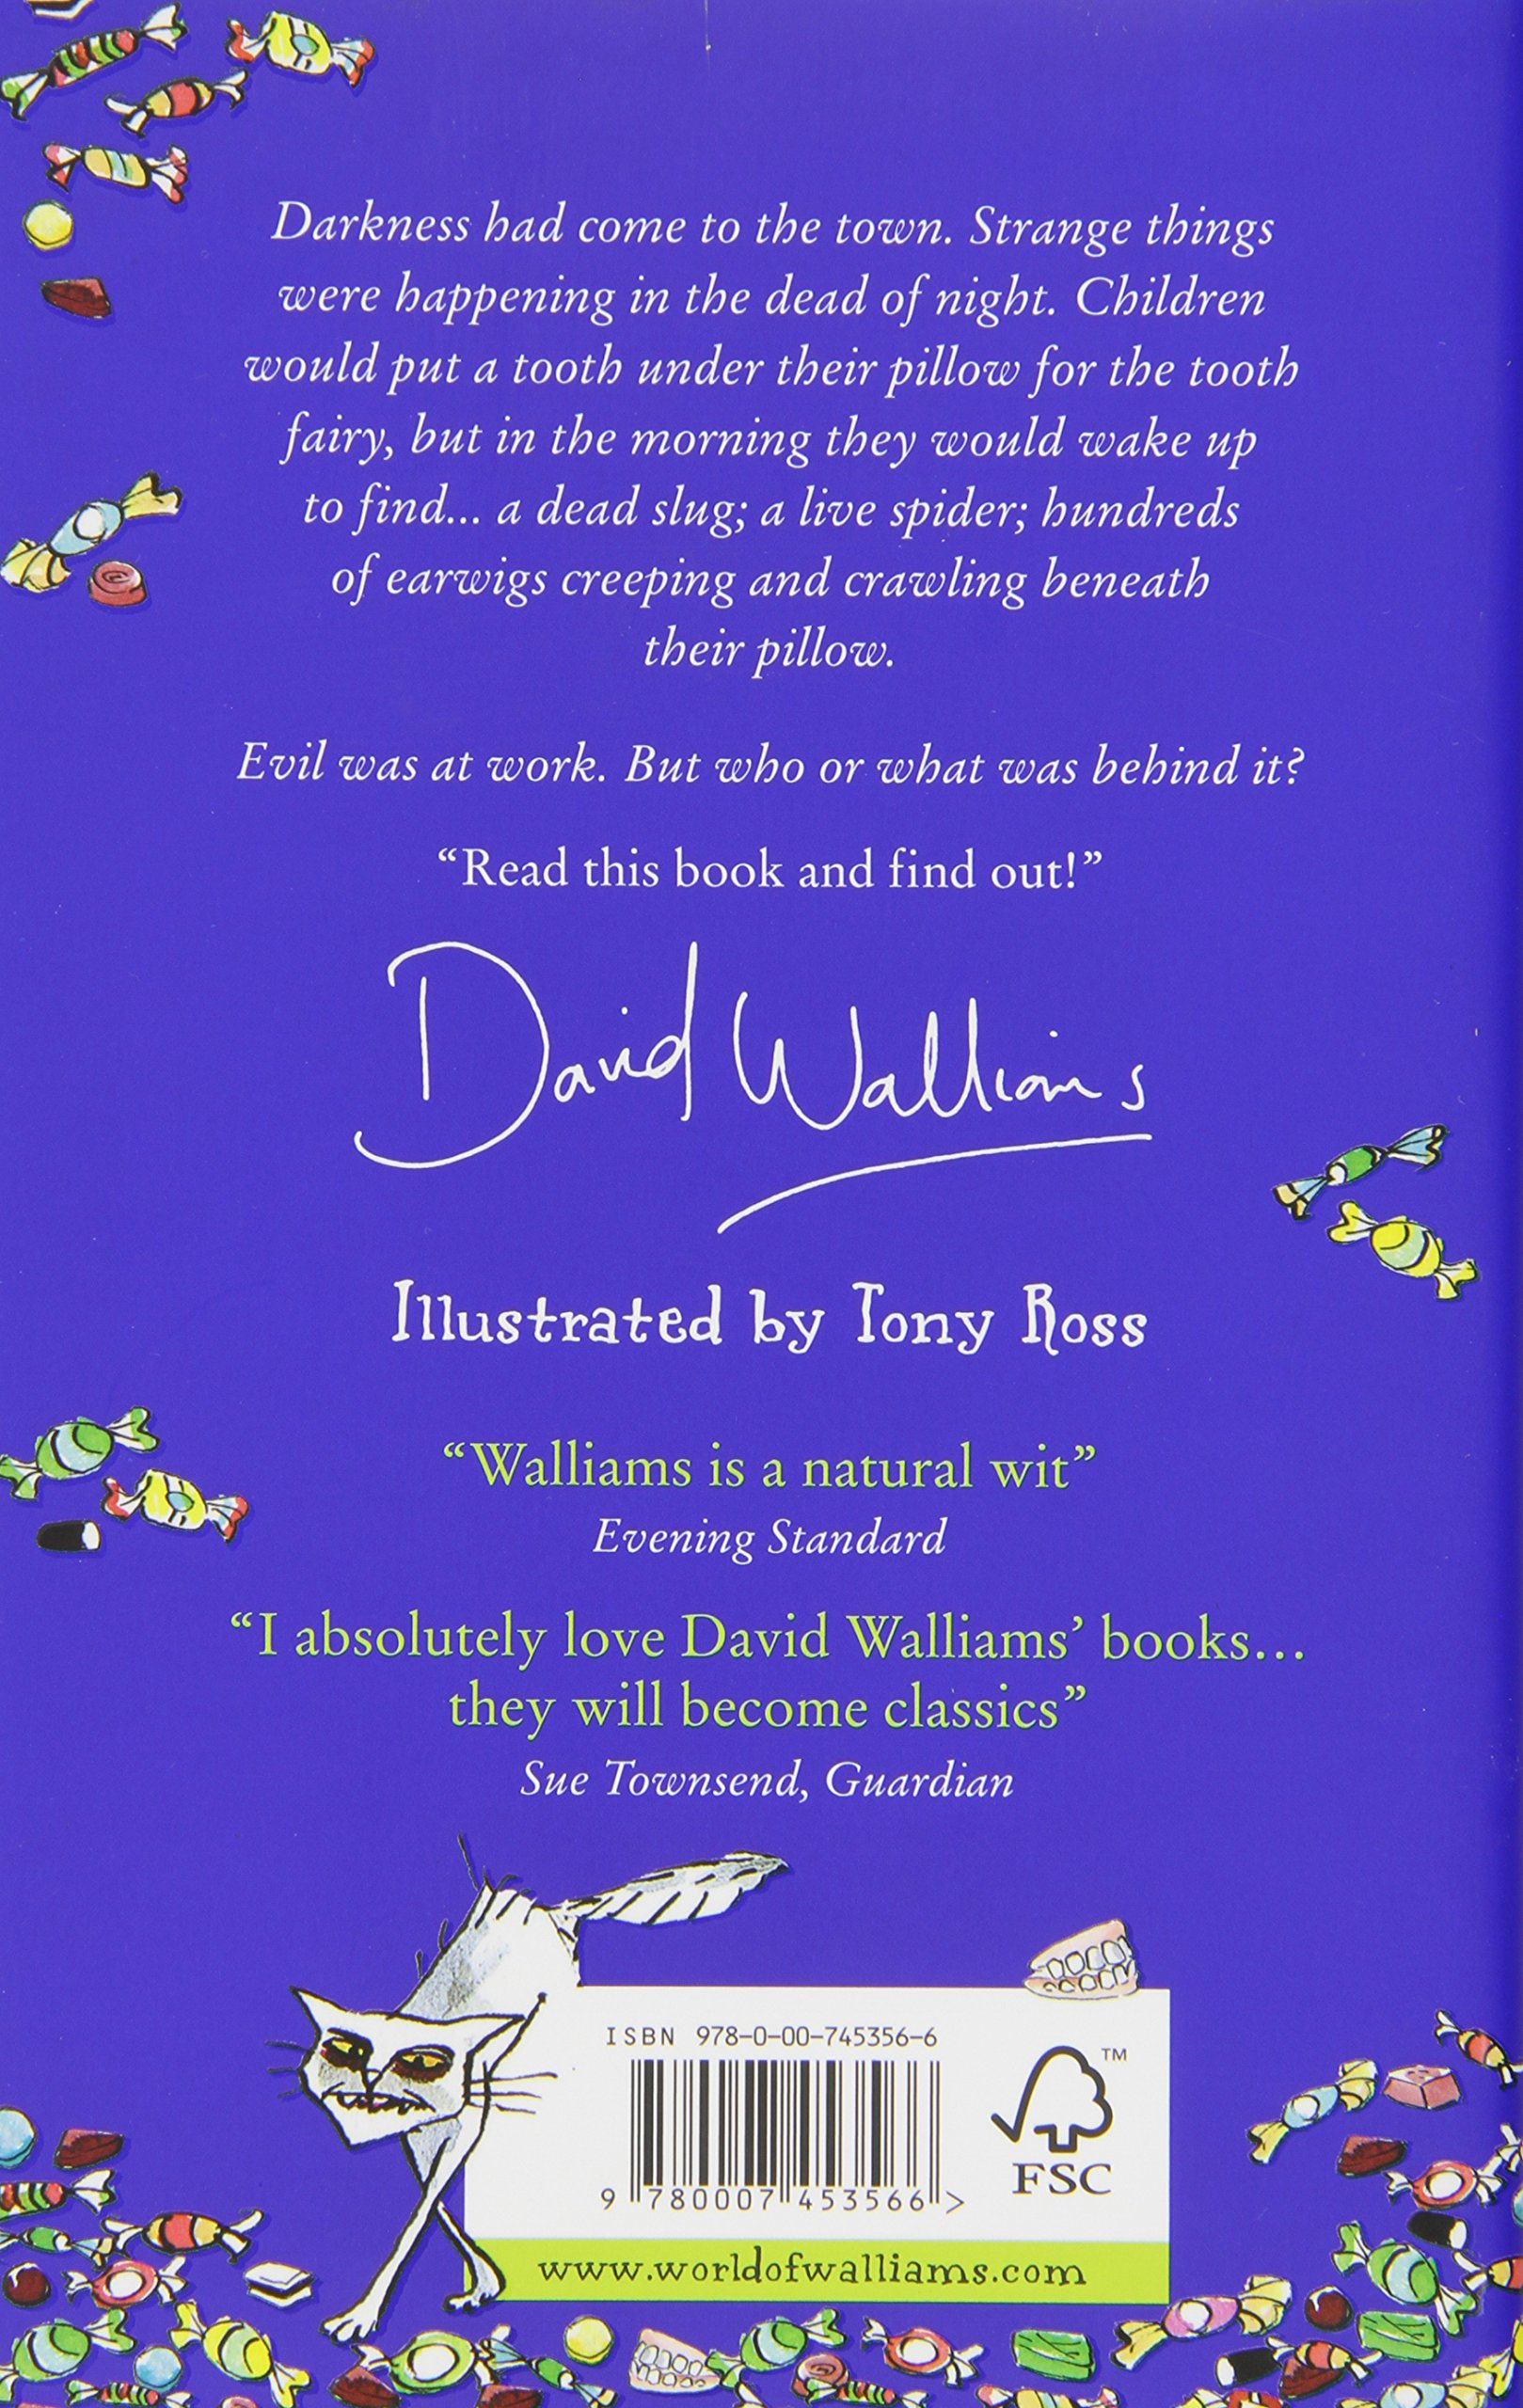 Reviews children s book review demon dentist david walliams - Reviews Children S Book Review Demon Dentist David Walliams 1